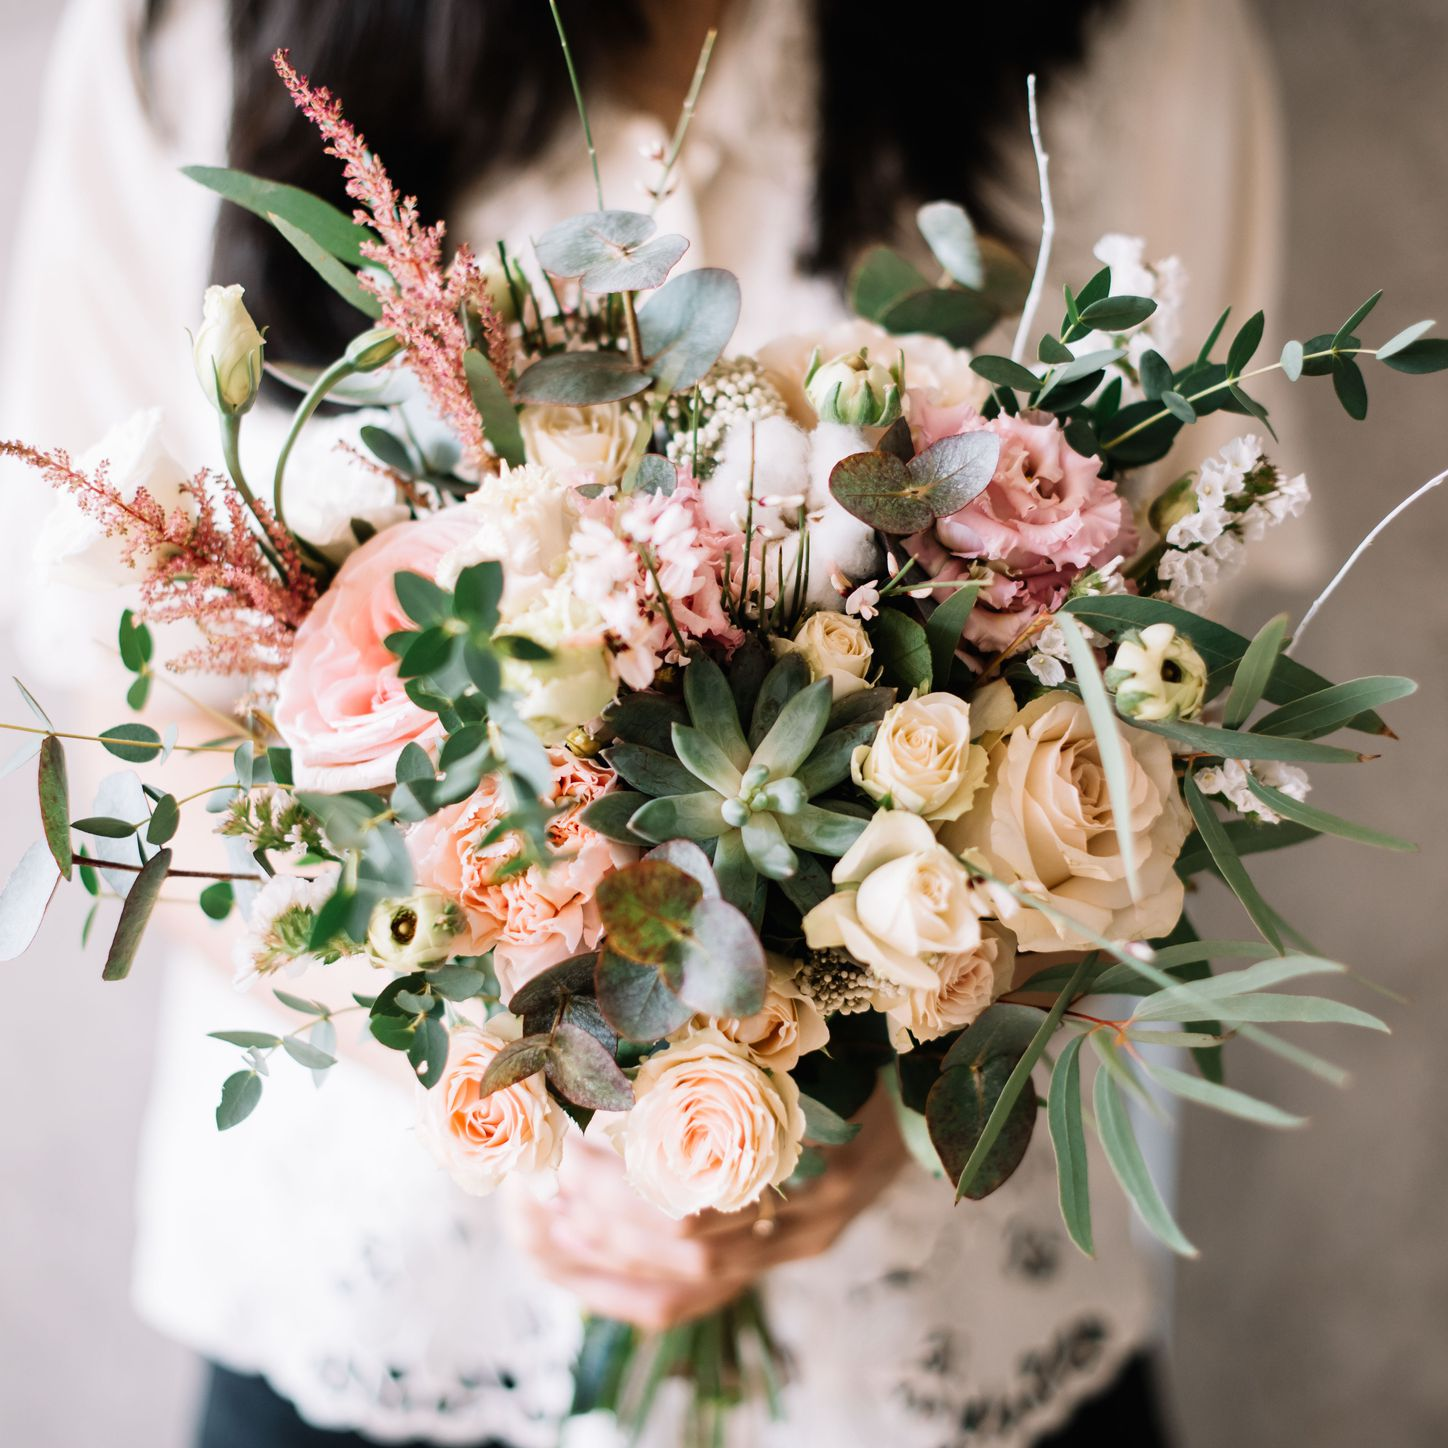 ideas for you to choose orange narcissus wedding flowers 5 - Ideas for You to Choose Orange Narcissus Wedding Flowers